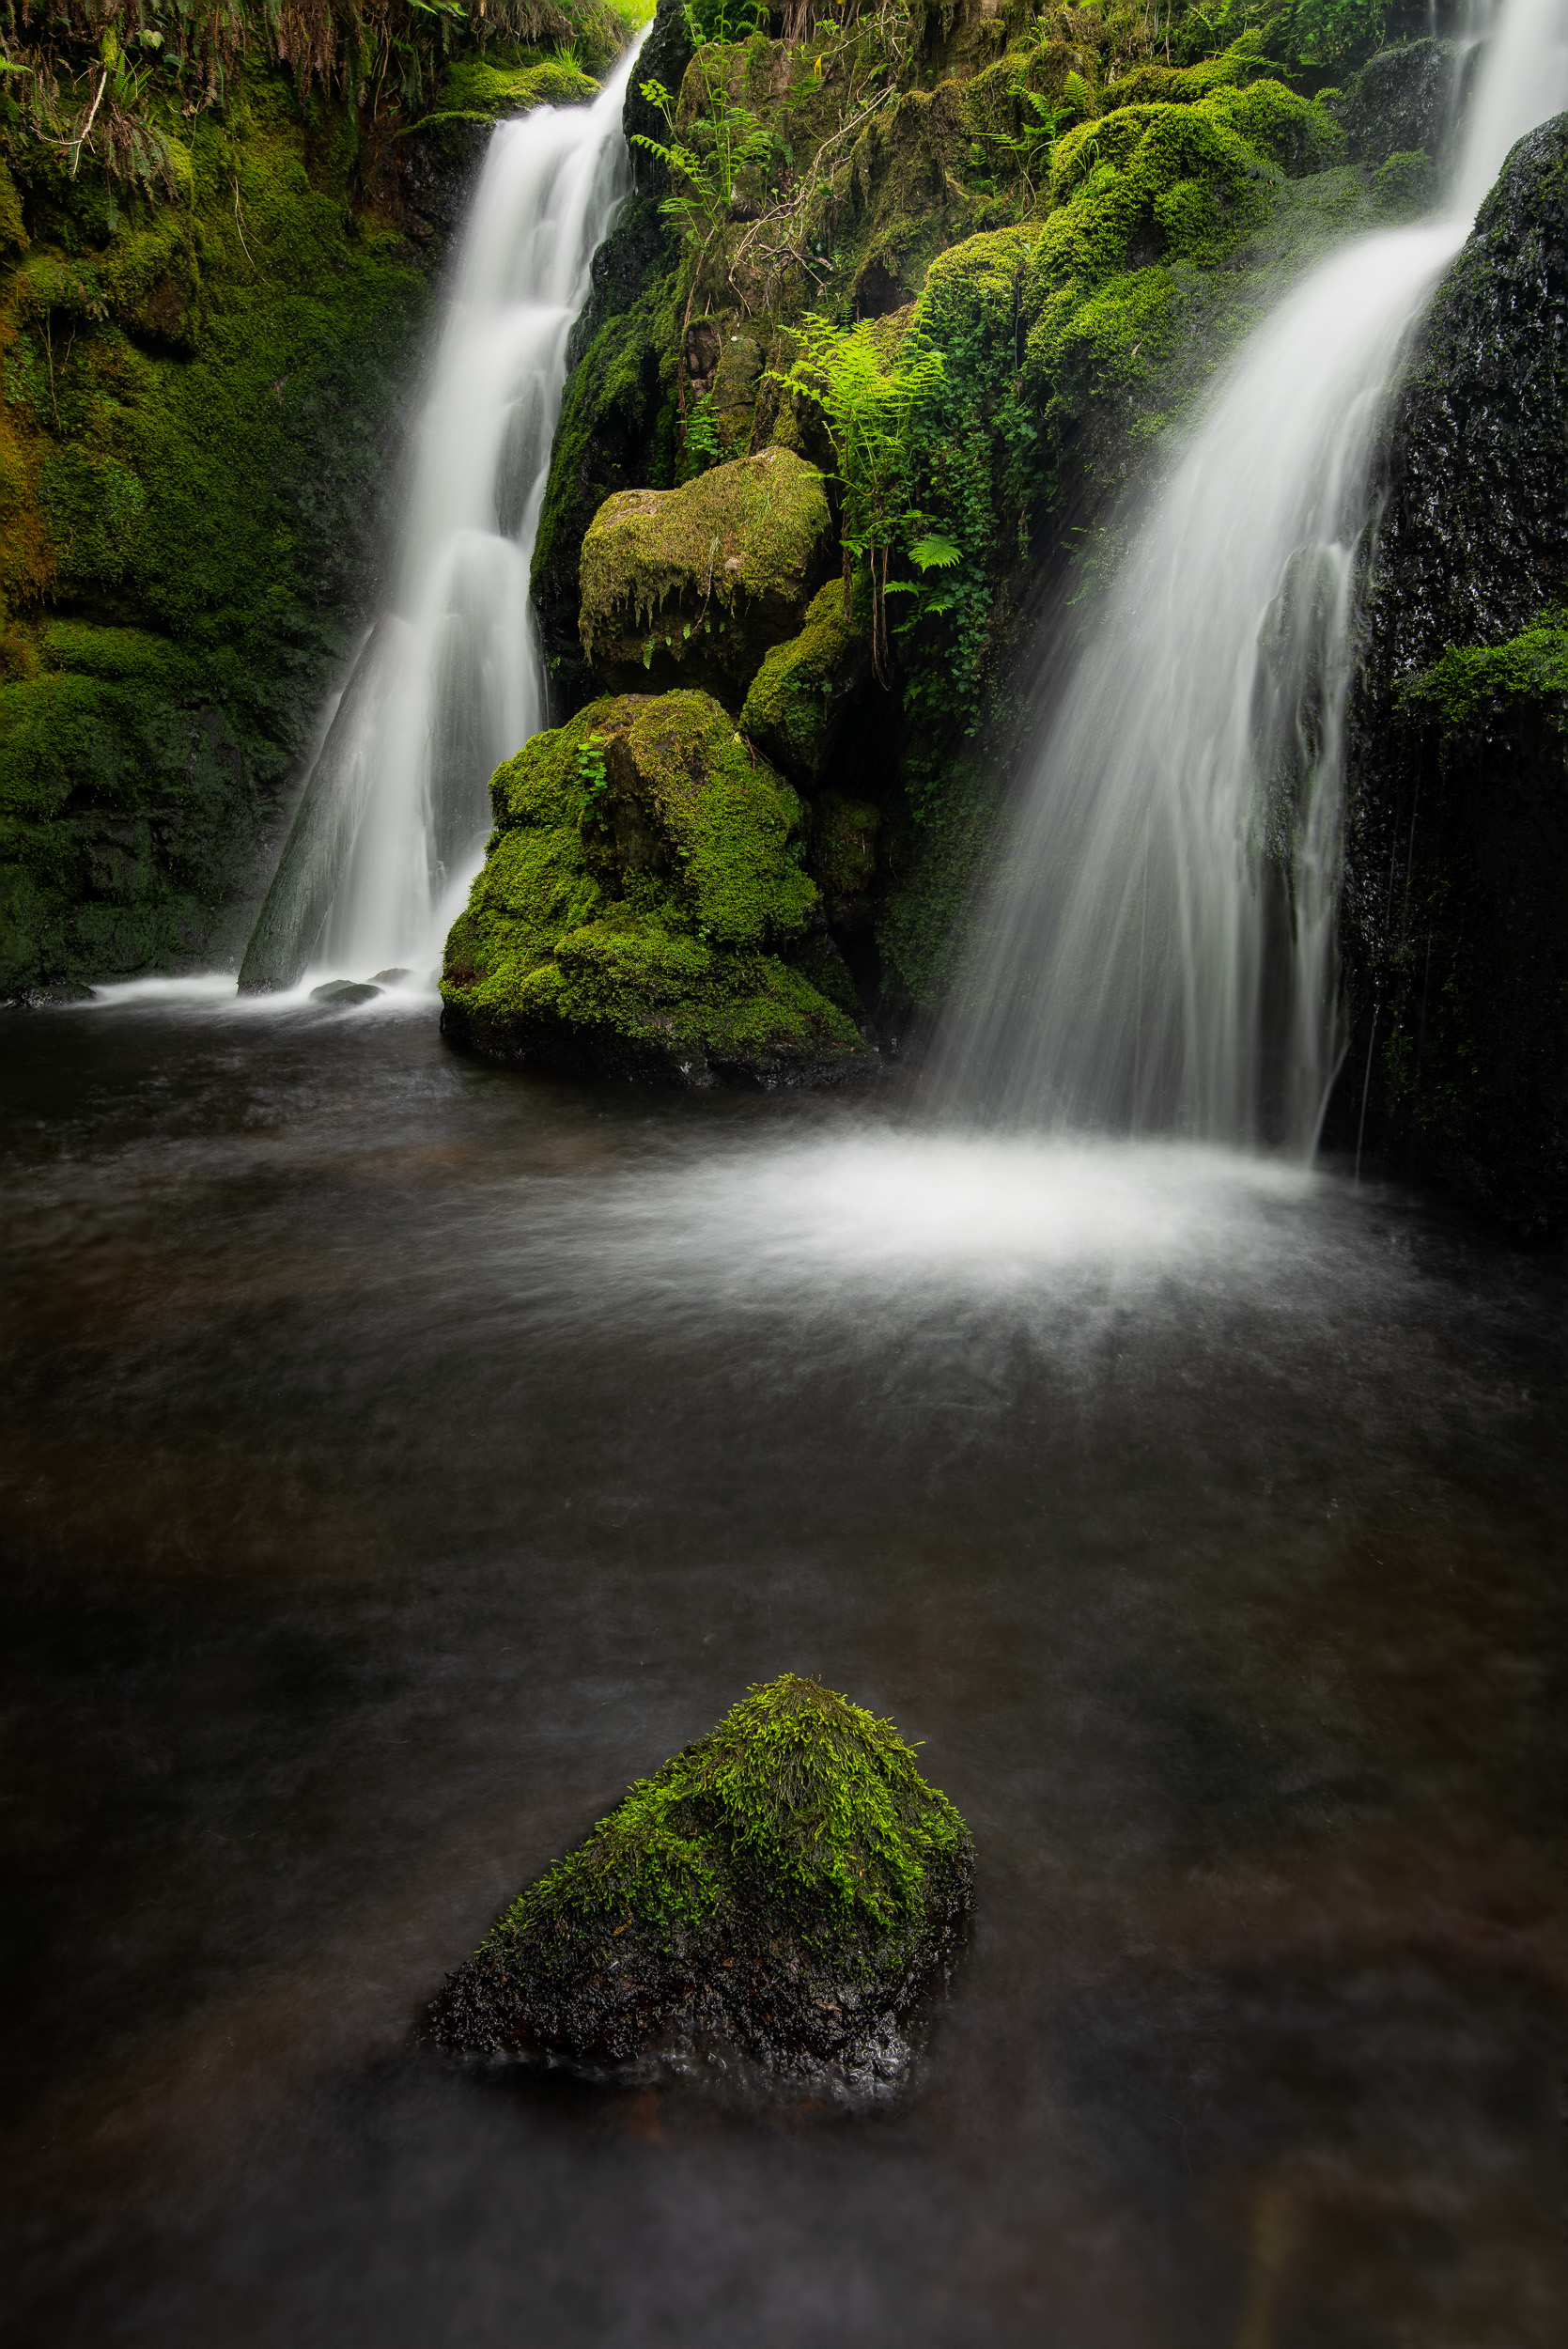 Venford Falls  - Dartmoor, Devon: Nikon D850, Nikkor 16-35 mm f/4 at 24 mm, 2.5 secs at f/8, ISO 64, Lee Filters Circular Polariser.